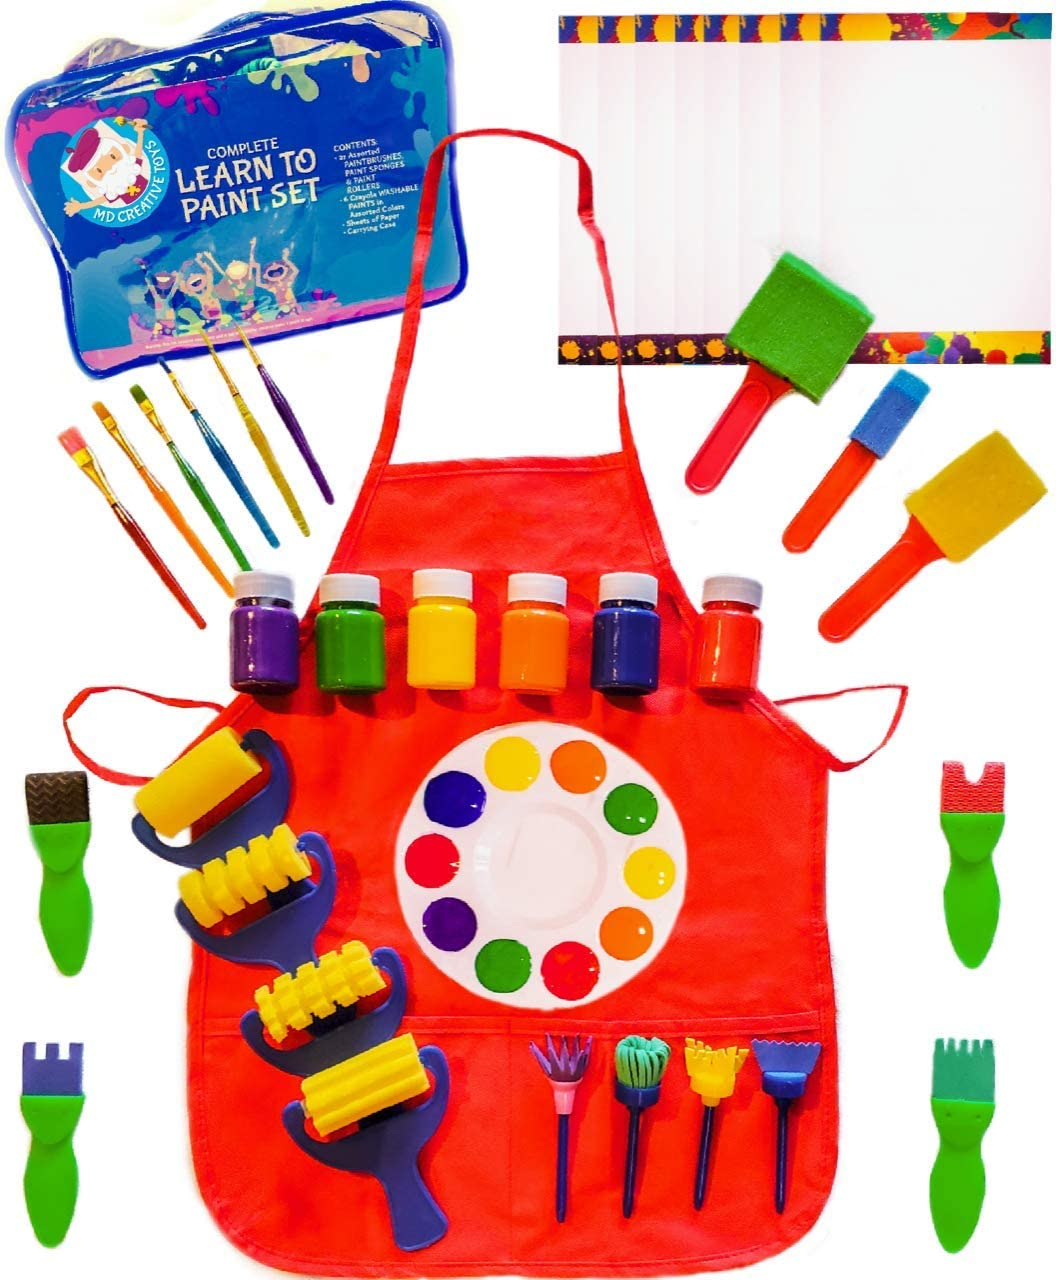 Kids Learn to Paint Set with Washable Overseas parallel import regular item shop Finger C in 4 Smock